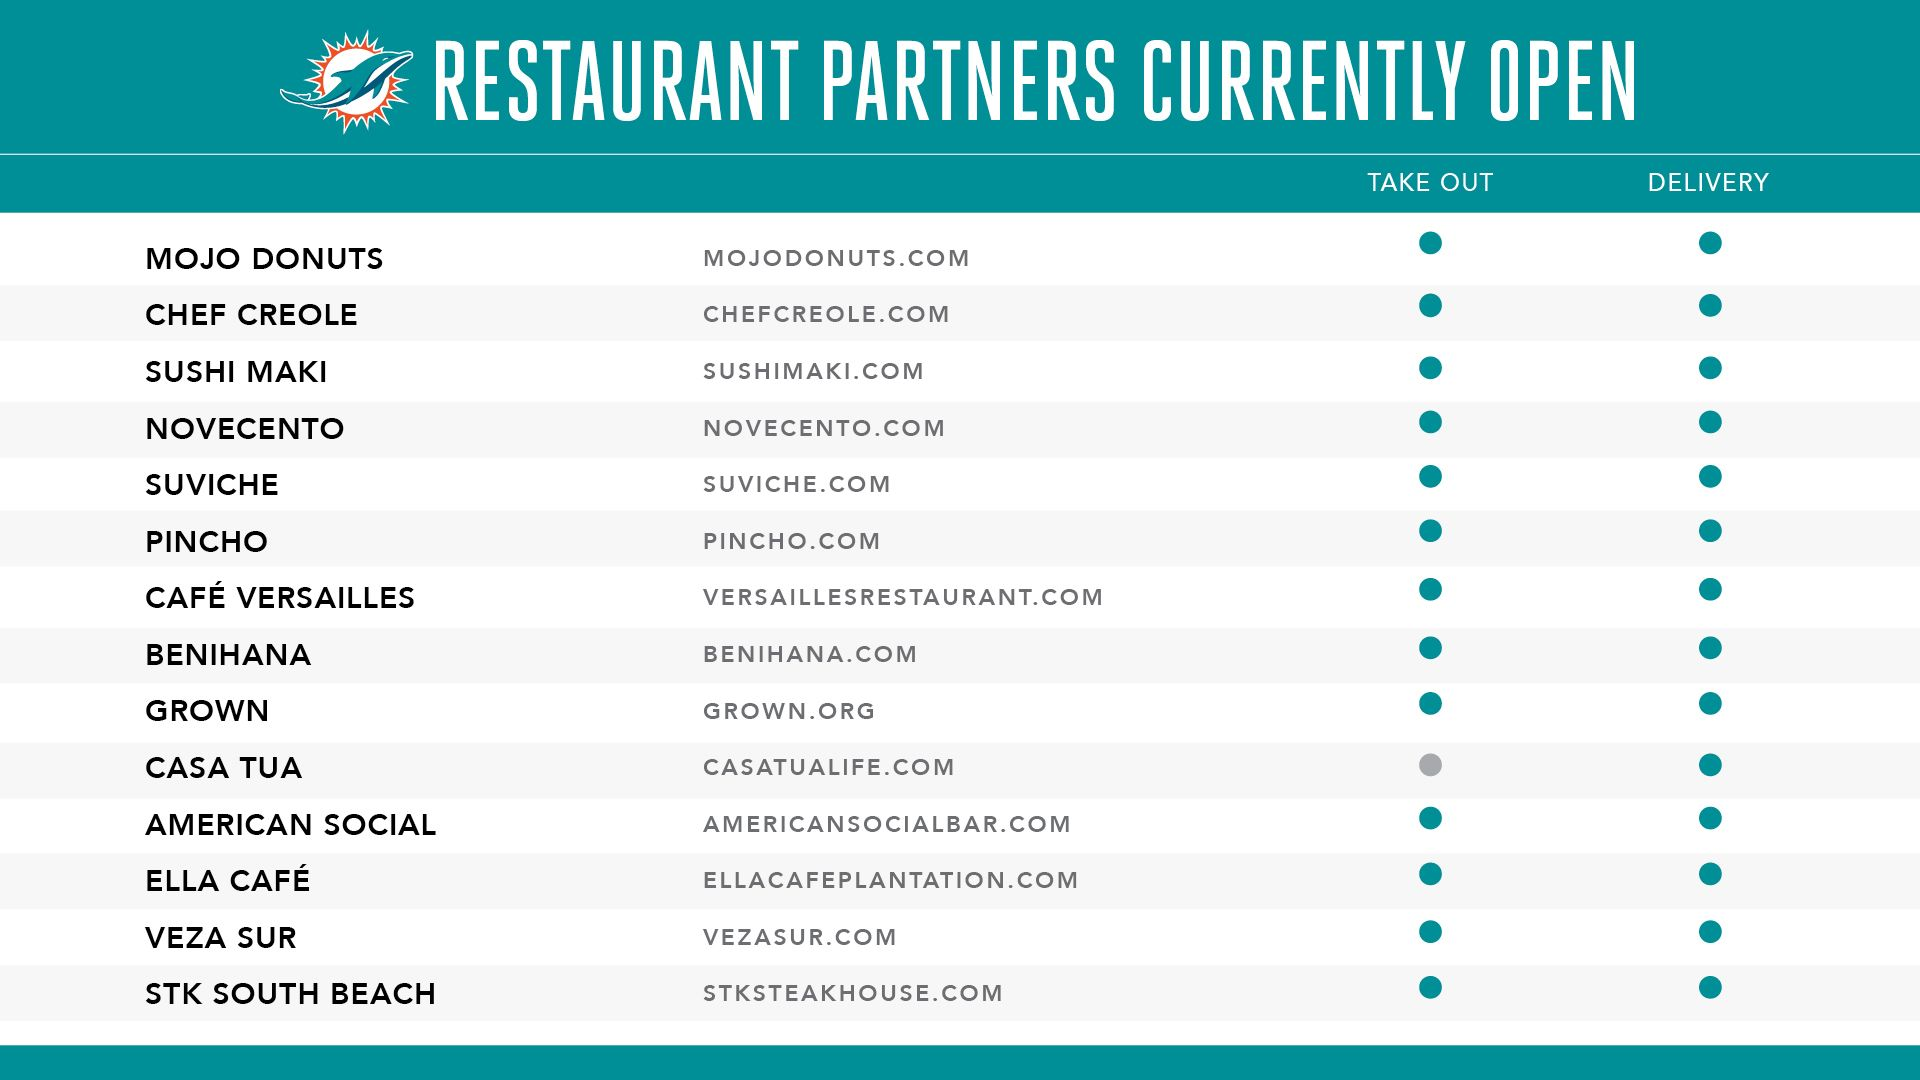 MAR497_Dolphins Food Partners Chart_1920x1080